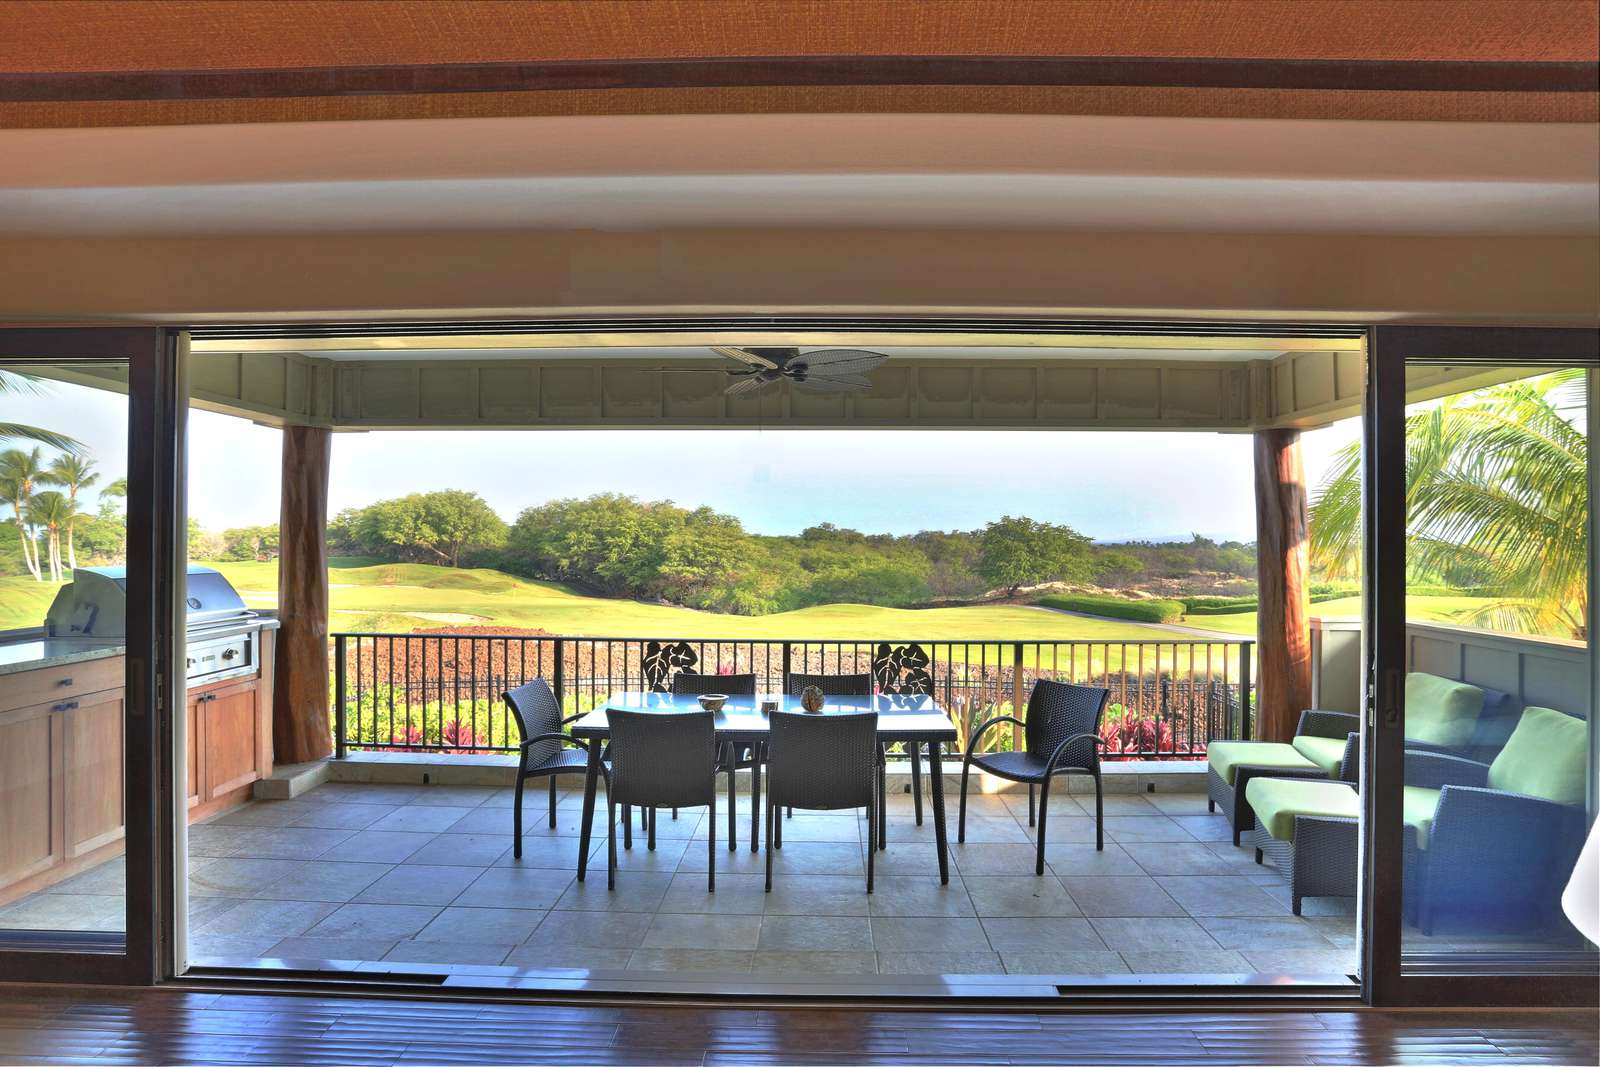 View out to the lanai, golf course and ocean